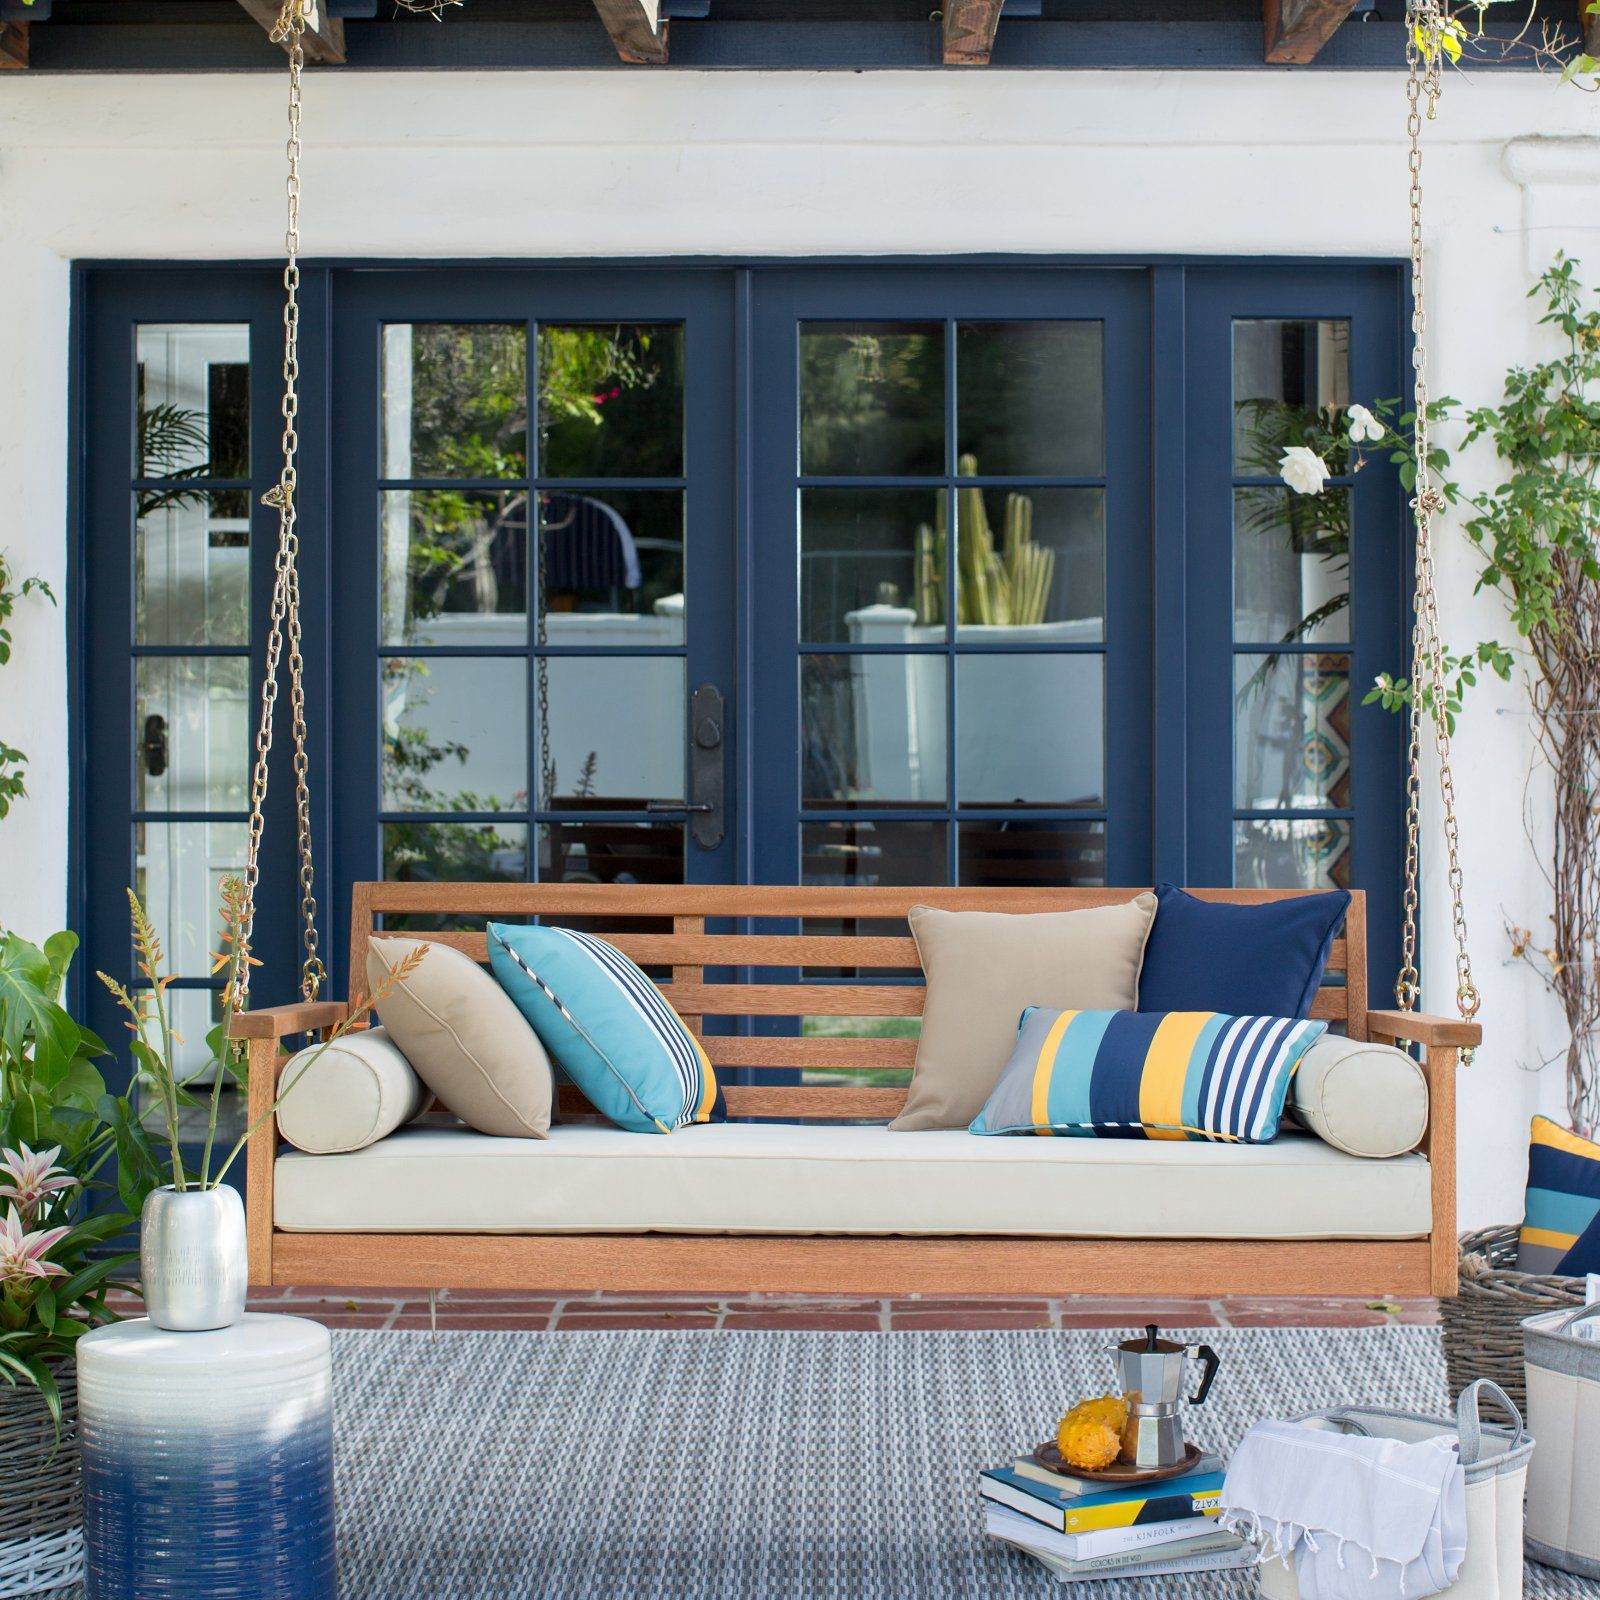 Outdoor Belham Living Brighton Deep Seating 65 In Porch Swing Bed With Cushion Porch Swing Patio Swing House With Porch